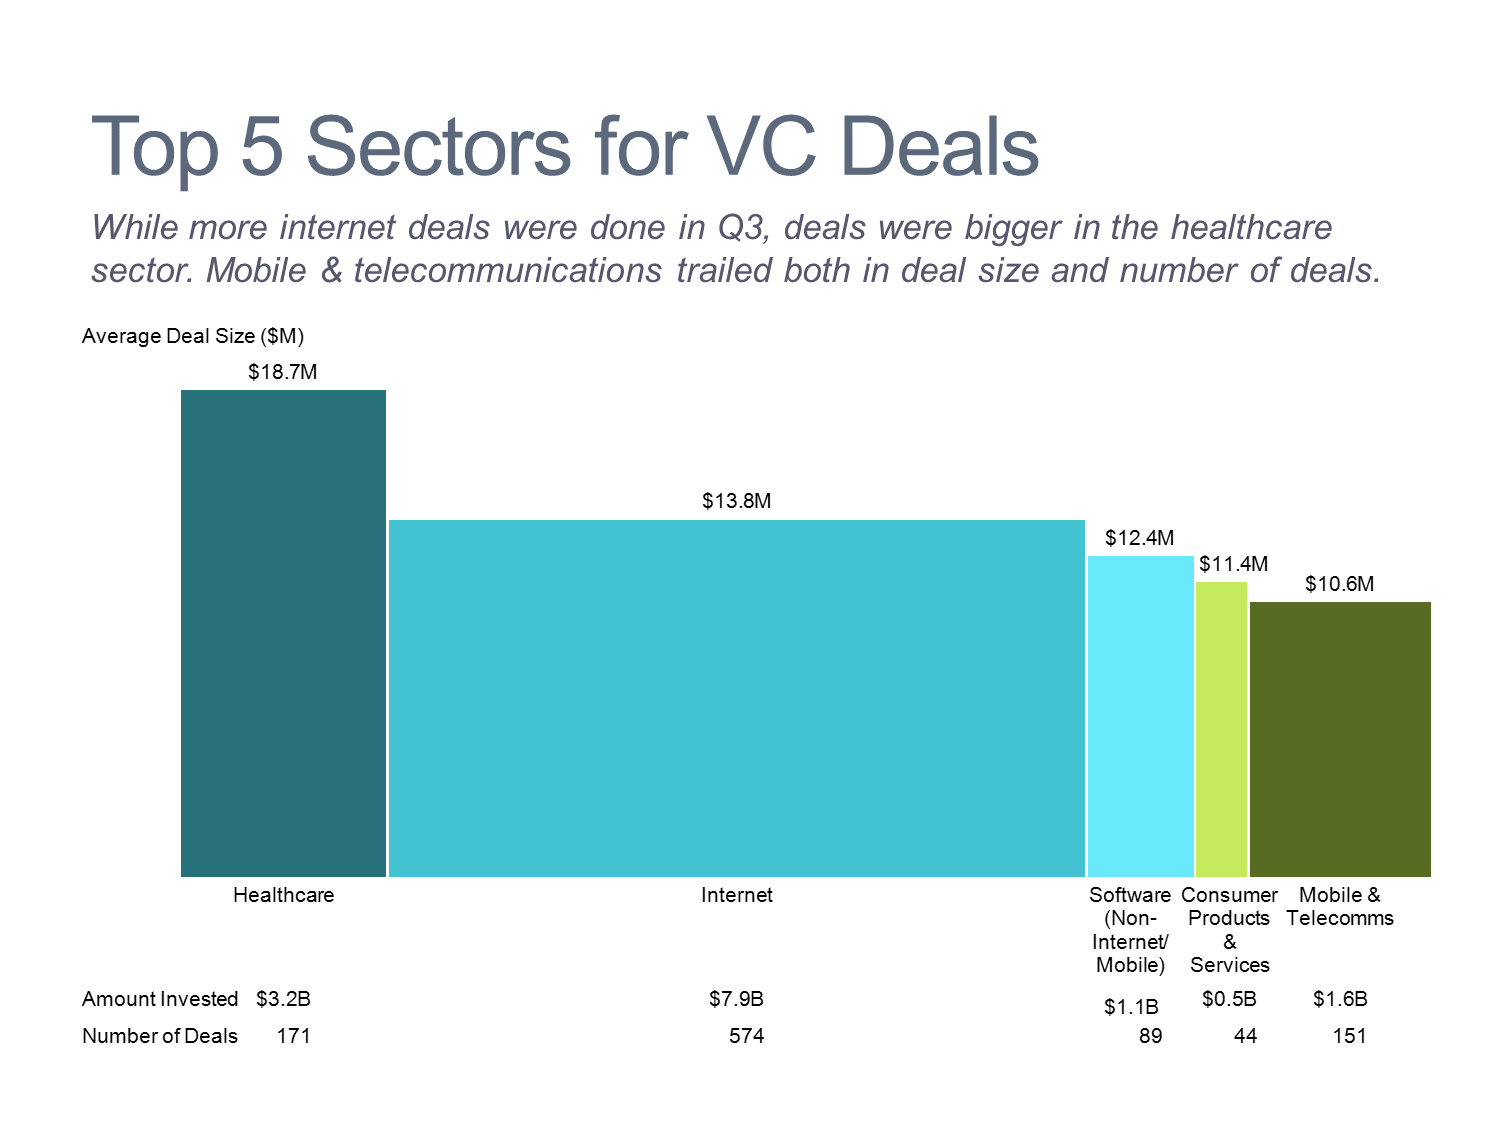 Top 5 Sectors for Venture Capital Deals Bar Mekko Chart